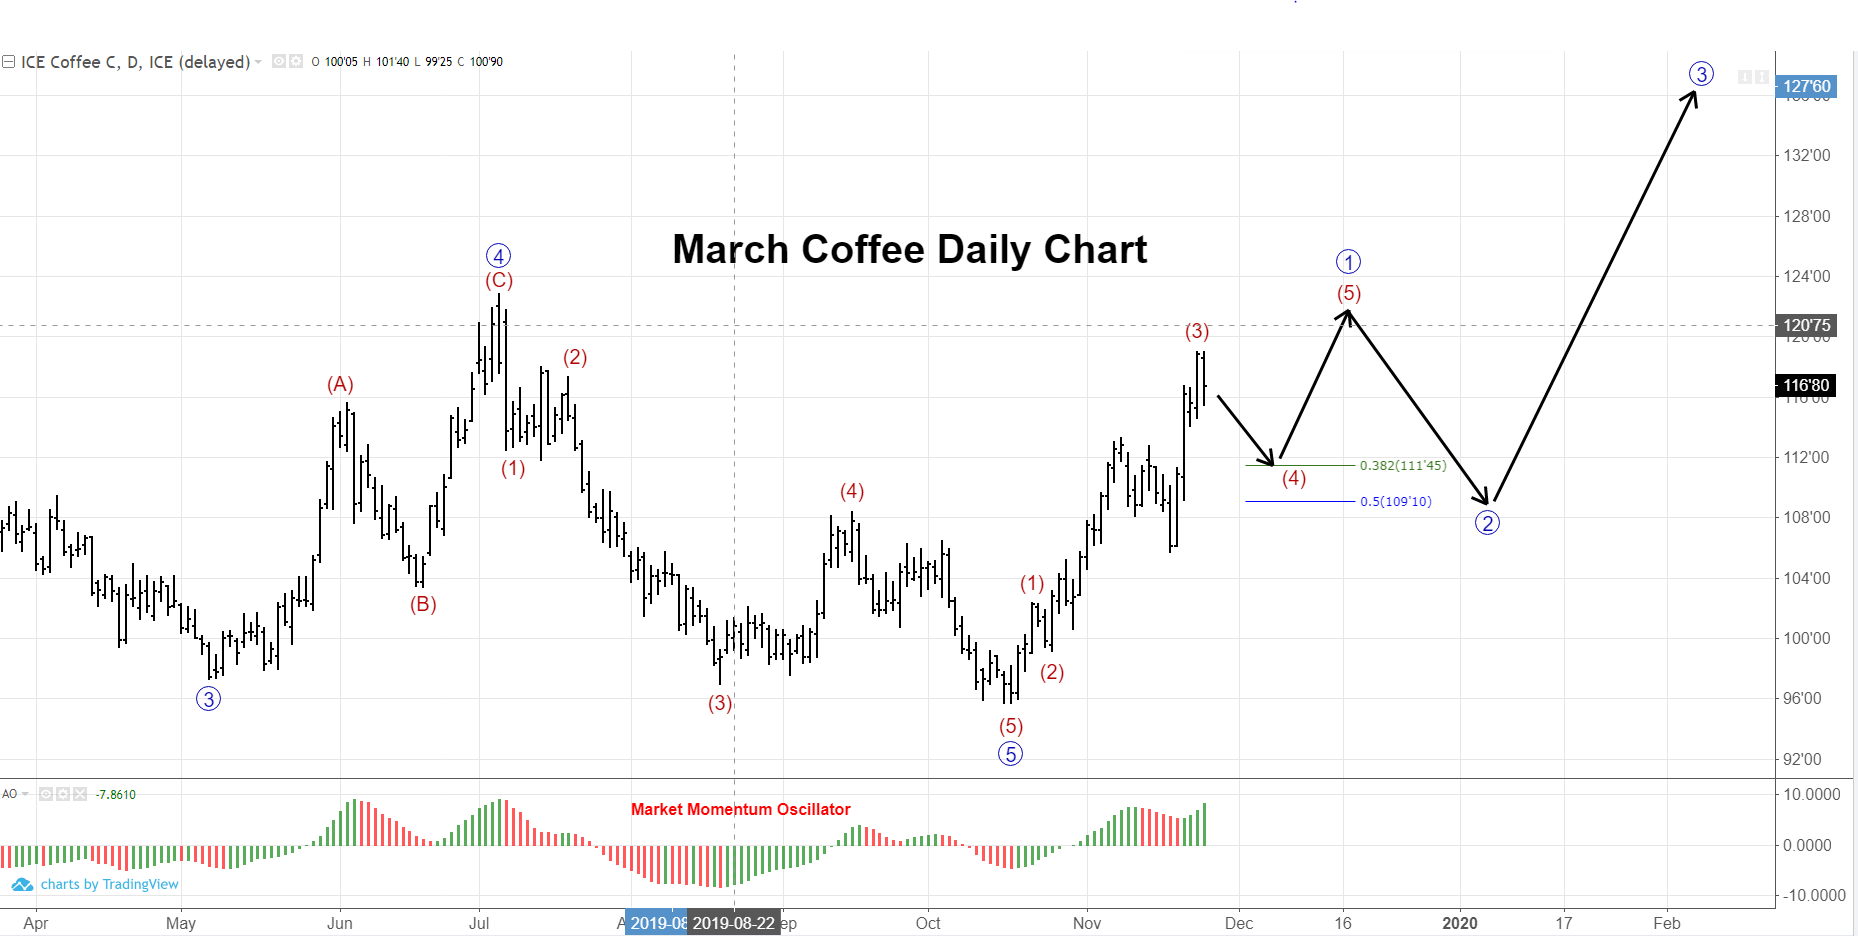 March Coffee Daily Futures Price Chart